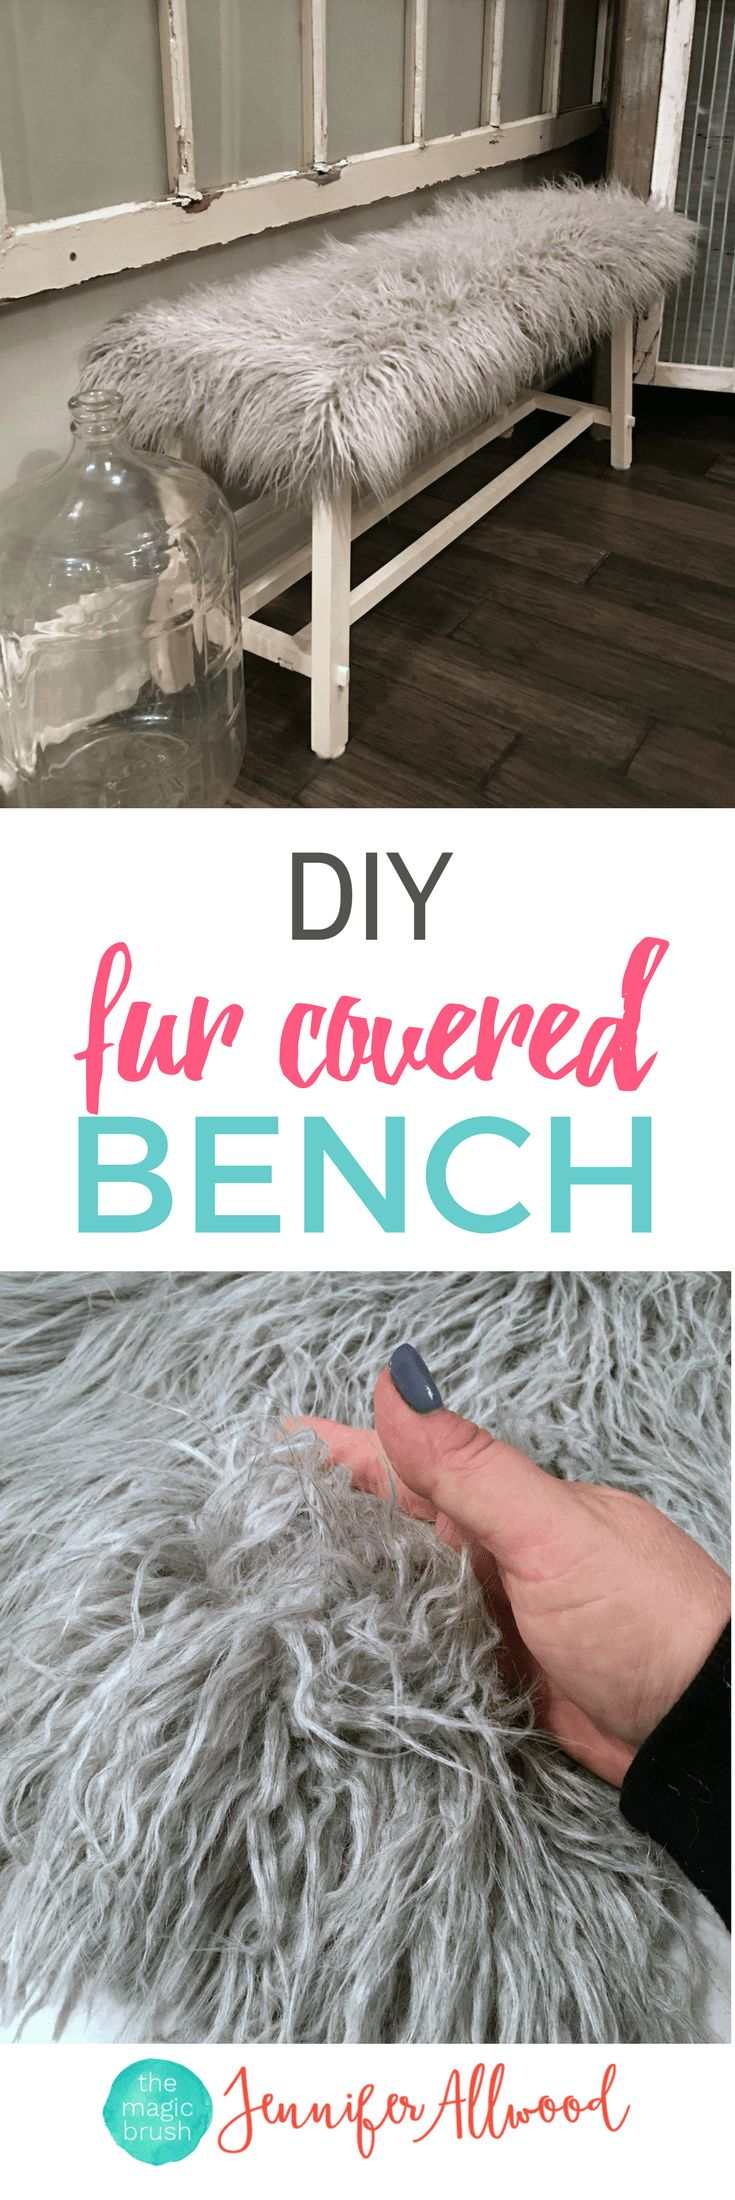 DIY Fur Covered Bench | Faux Fur Bench Tutorial | Luxe Furniture | Decorating Ideas from theMagicBrushinc.com